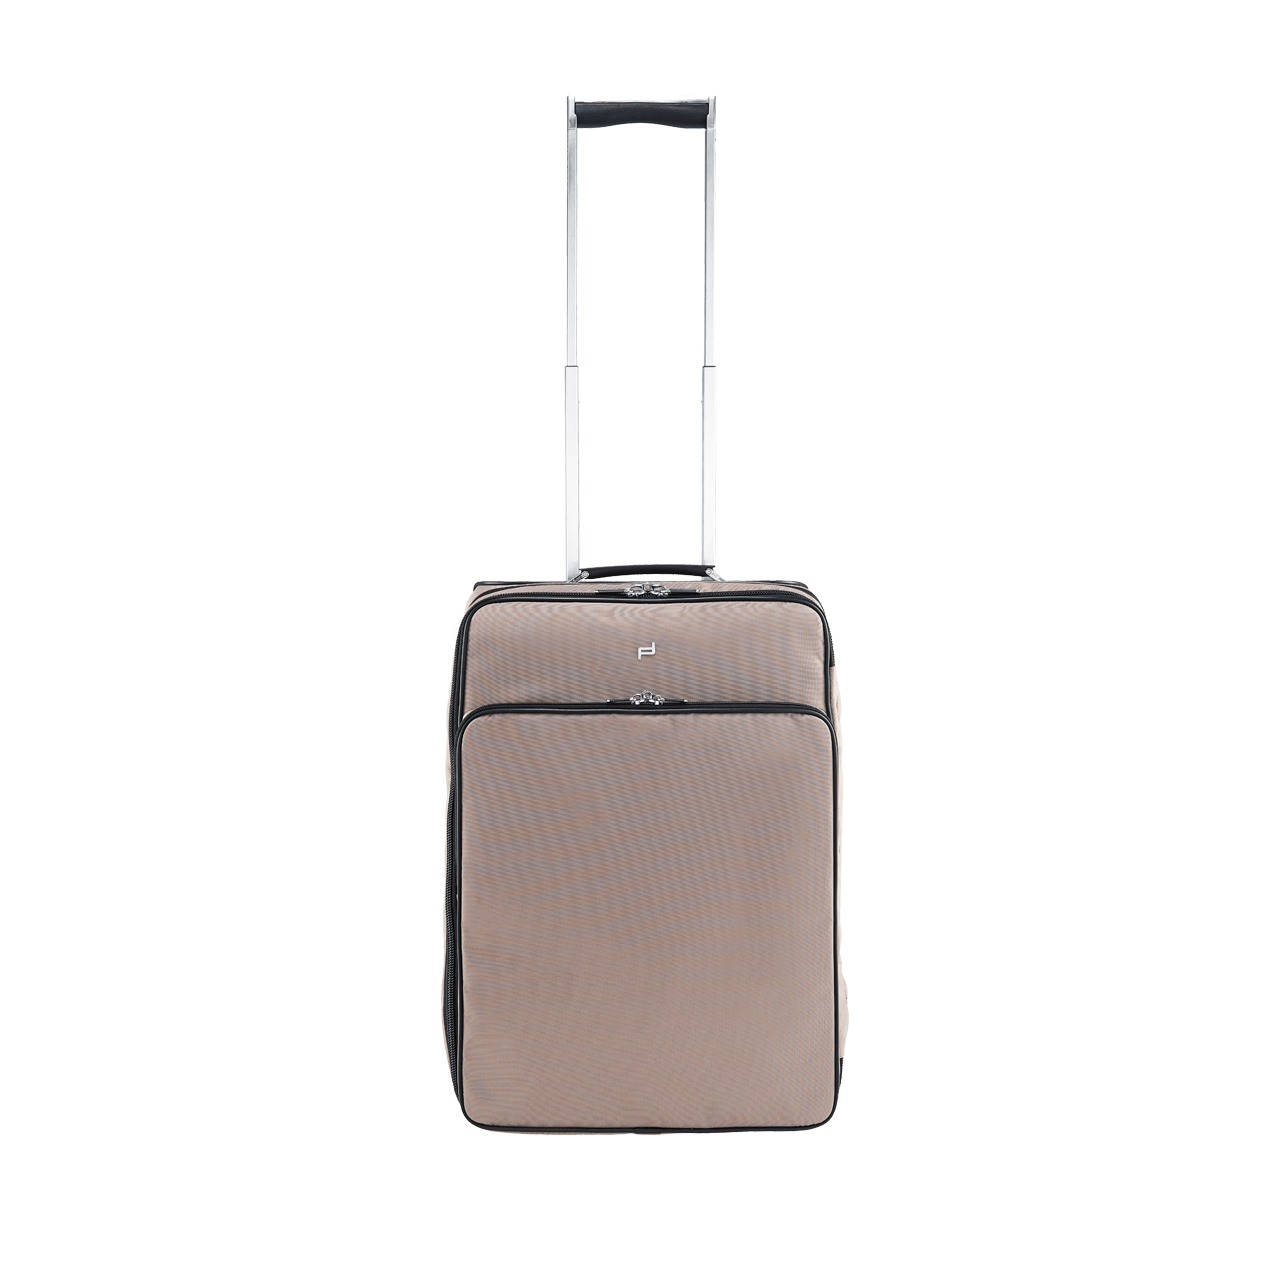 ROADSTER SOFTCASE SERIES TROLLEY 550 - фото 1